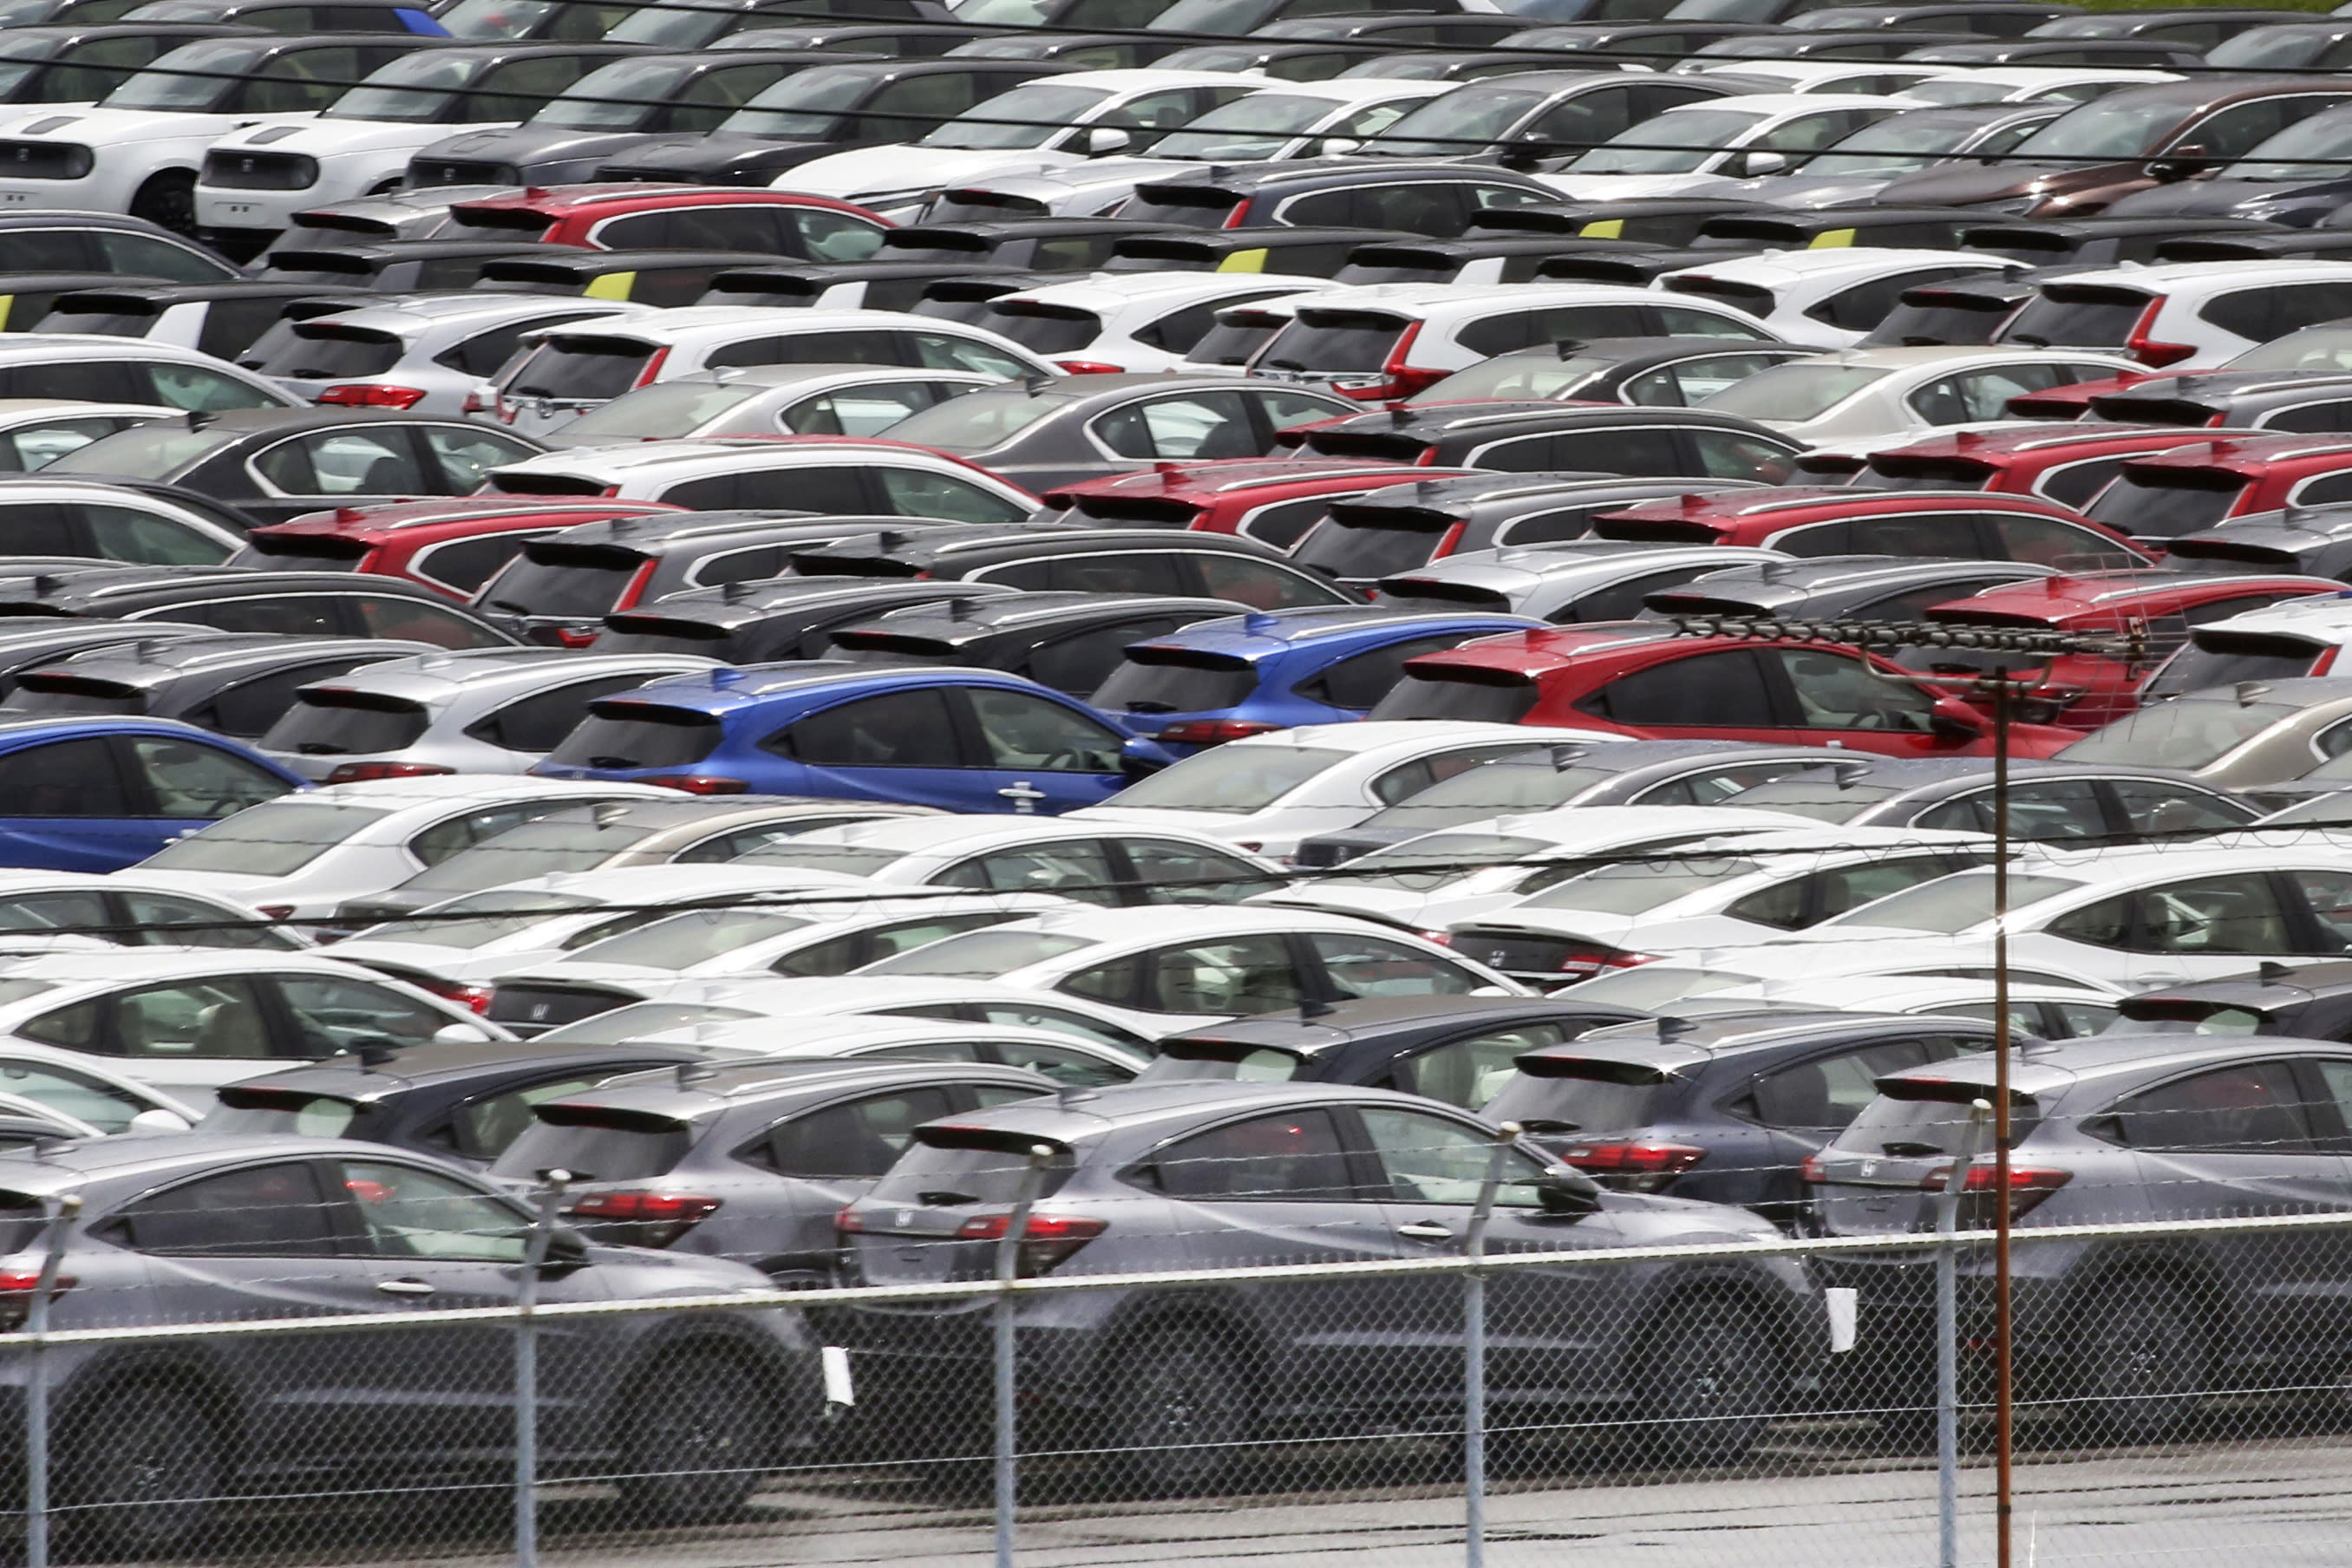 Cars to be exported are parked at a port in Yokohama, near Tokyo, on July 6, 2020. Japan's trade surplus widened in August as the pandemic pummeled a wide array of industries and sapped consumer demand, according to preliminary data from the Finance Ministry released Wednesday, Sept. 16, 2020. (AP Photo/Koji Sasahara)